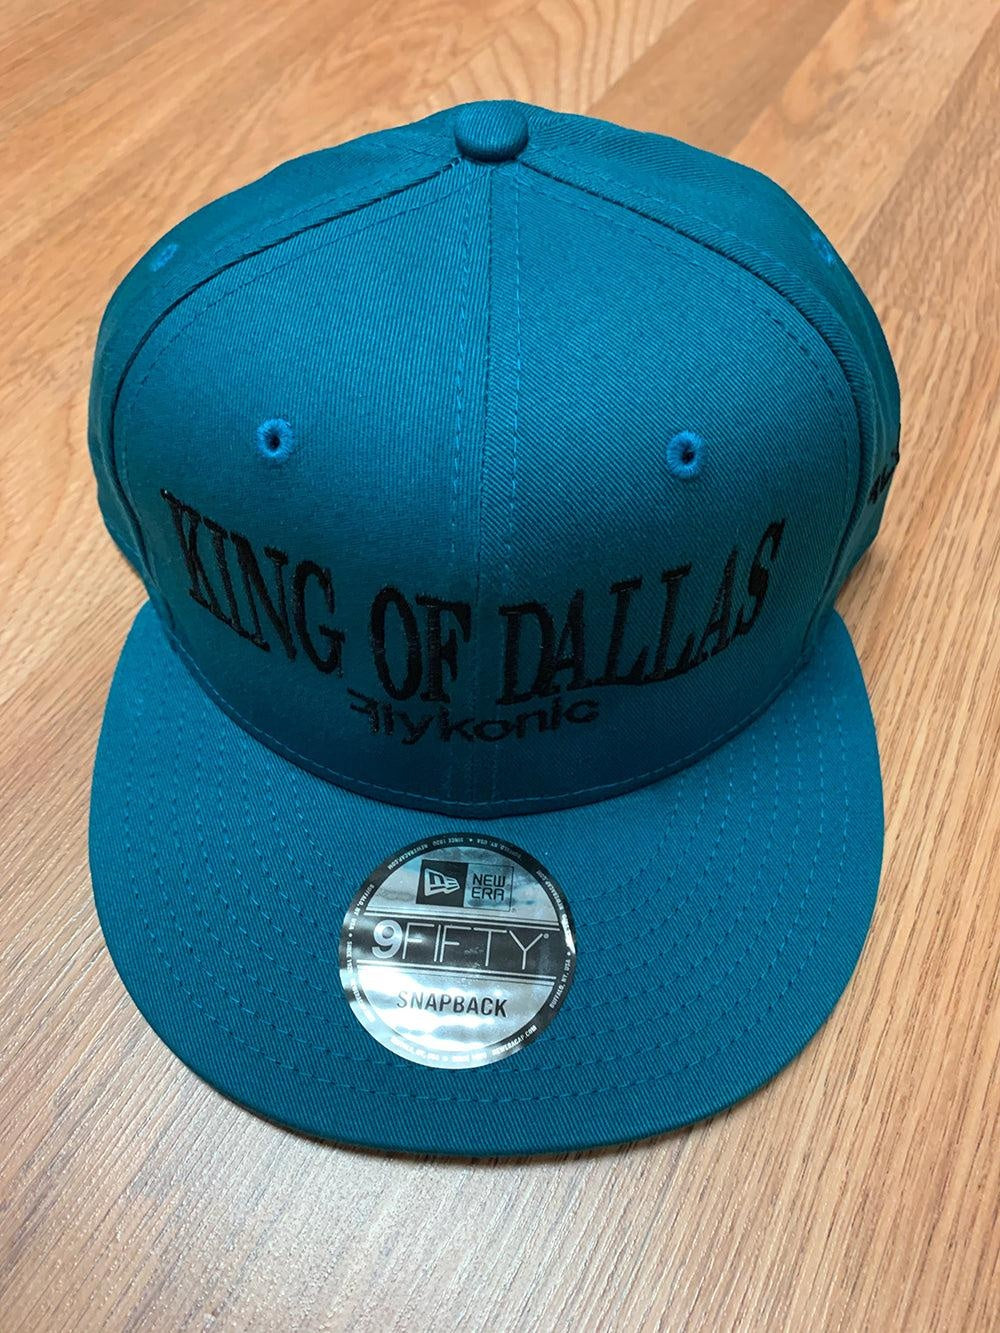 Flykonic King Of Dallas Snapback in Blue and Black